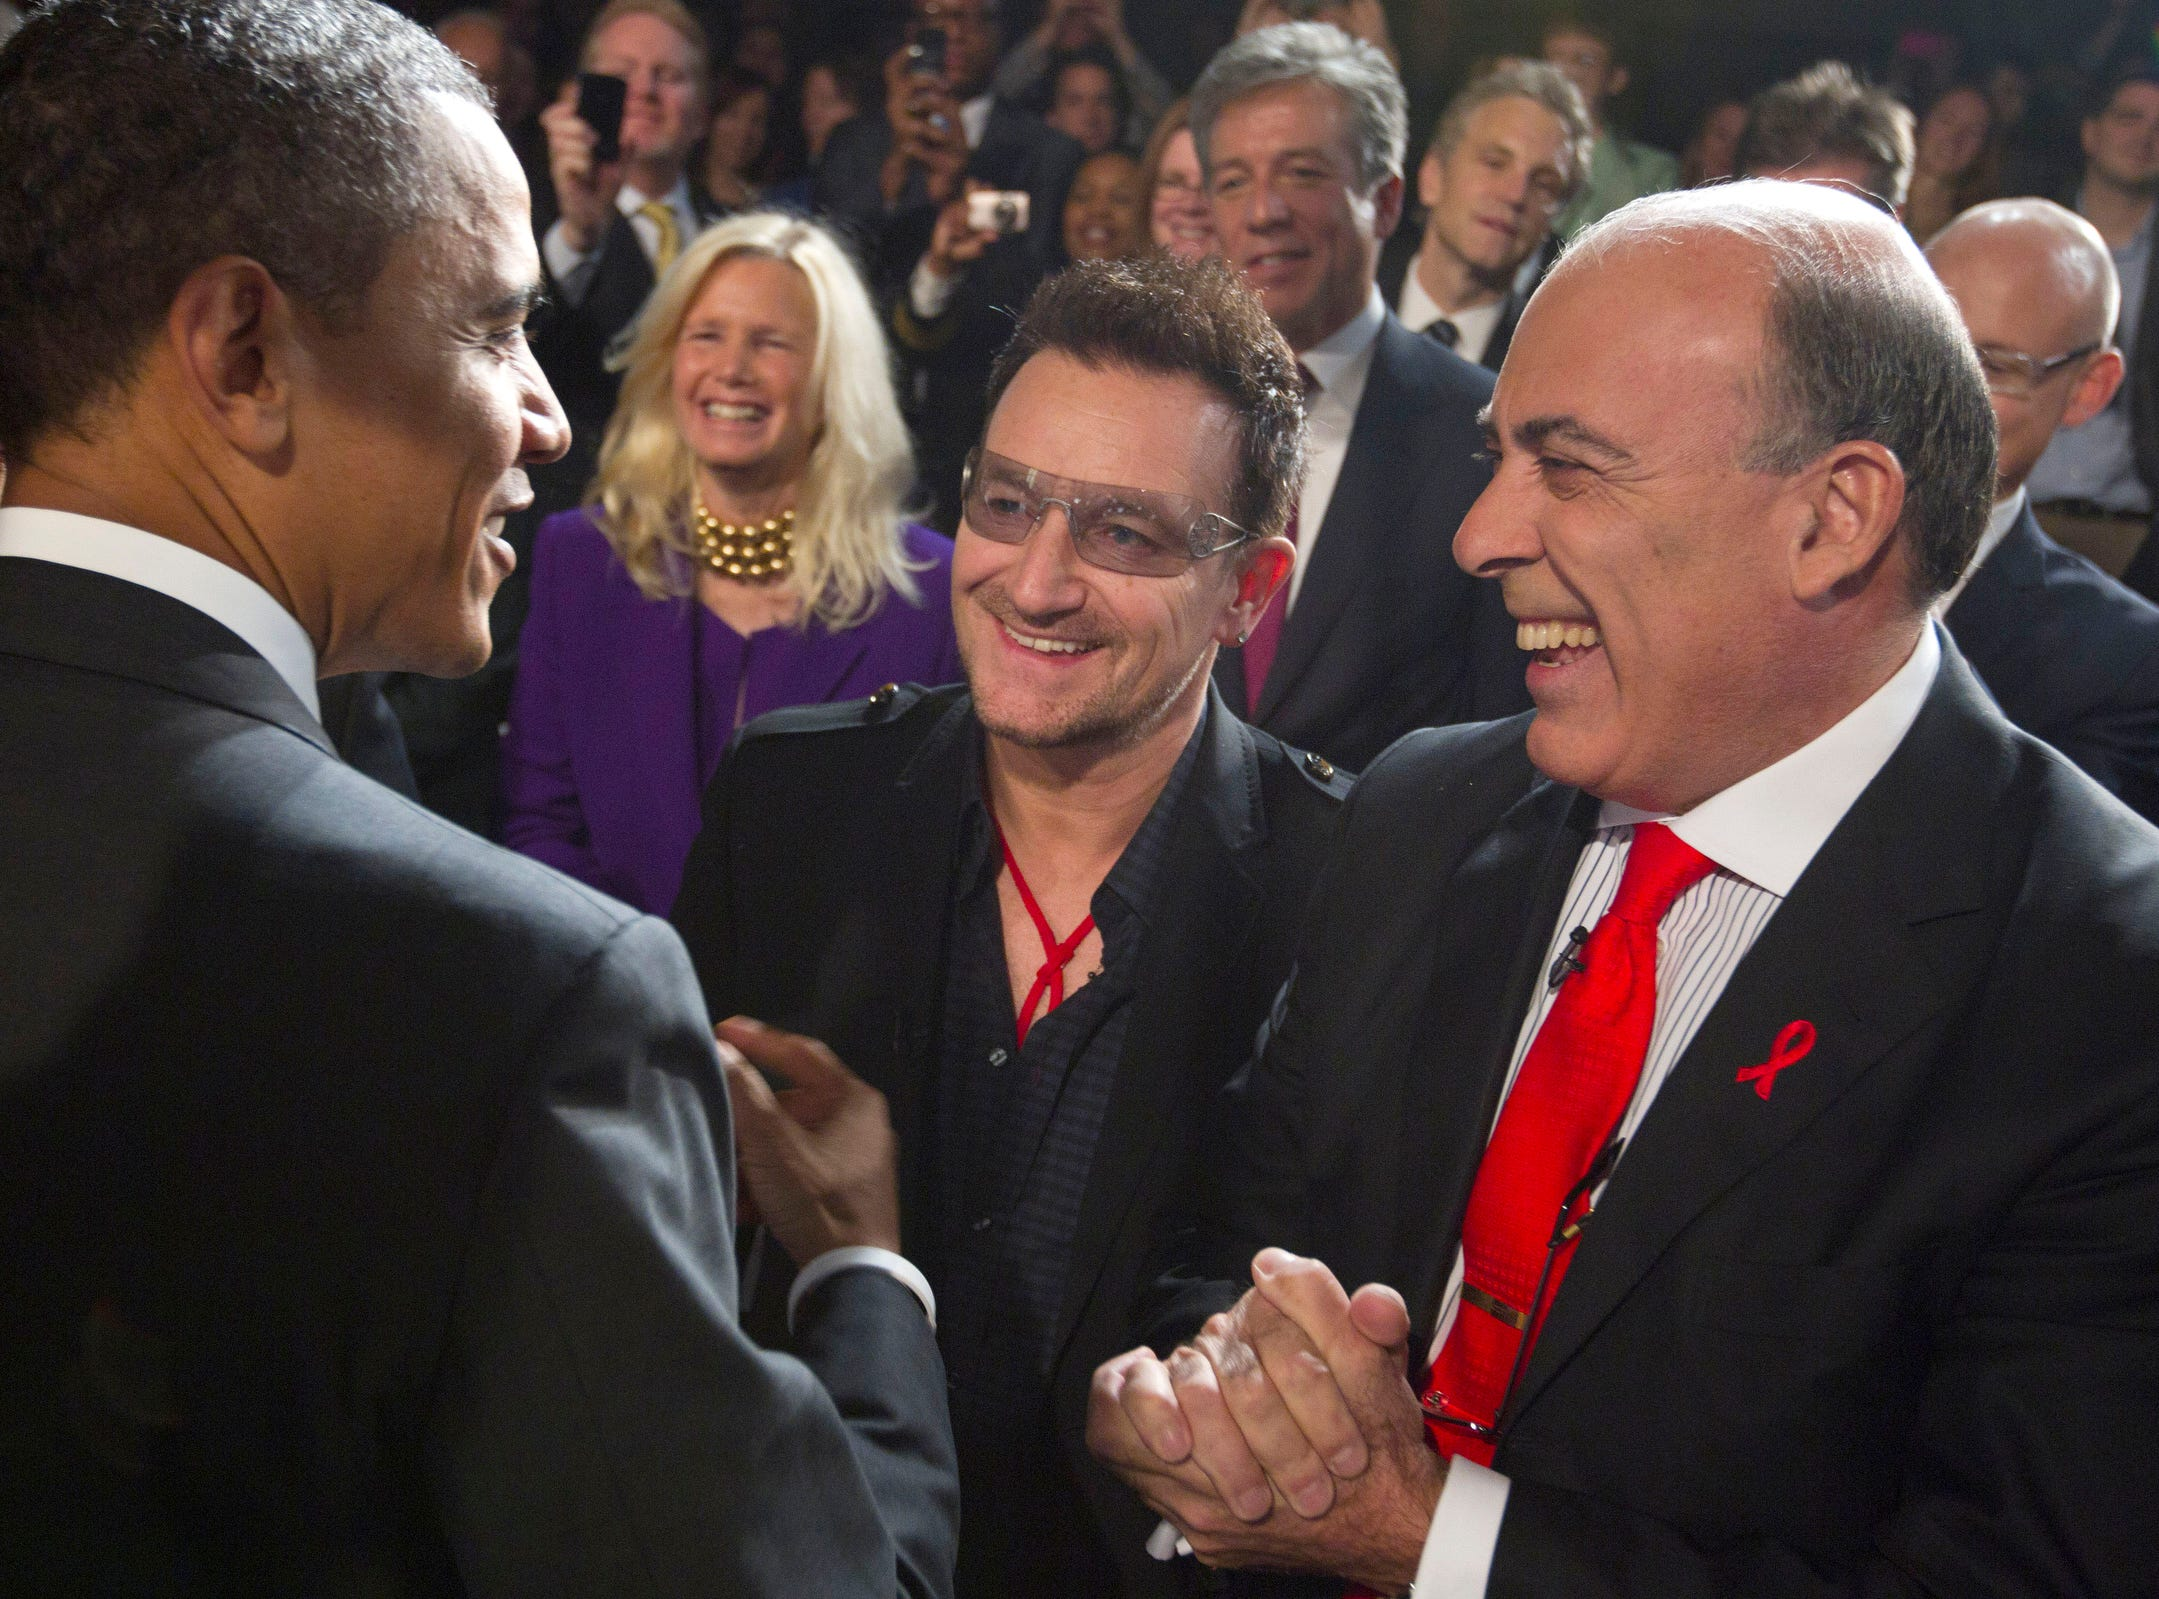 President Barack Obama greets U2 front man Bono, center, and Muhtar Kent, chairman of the Board and chief executive officer of The Coca-Cola Company, right, after speaking during a World AIDS Day event at George Washington University in Washington, in 2011.